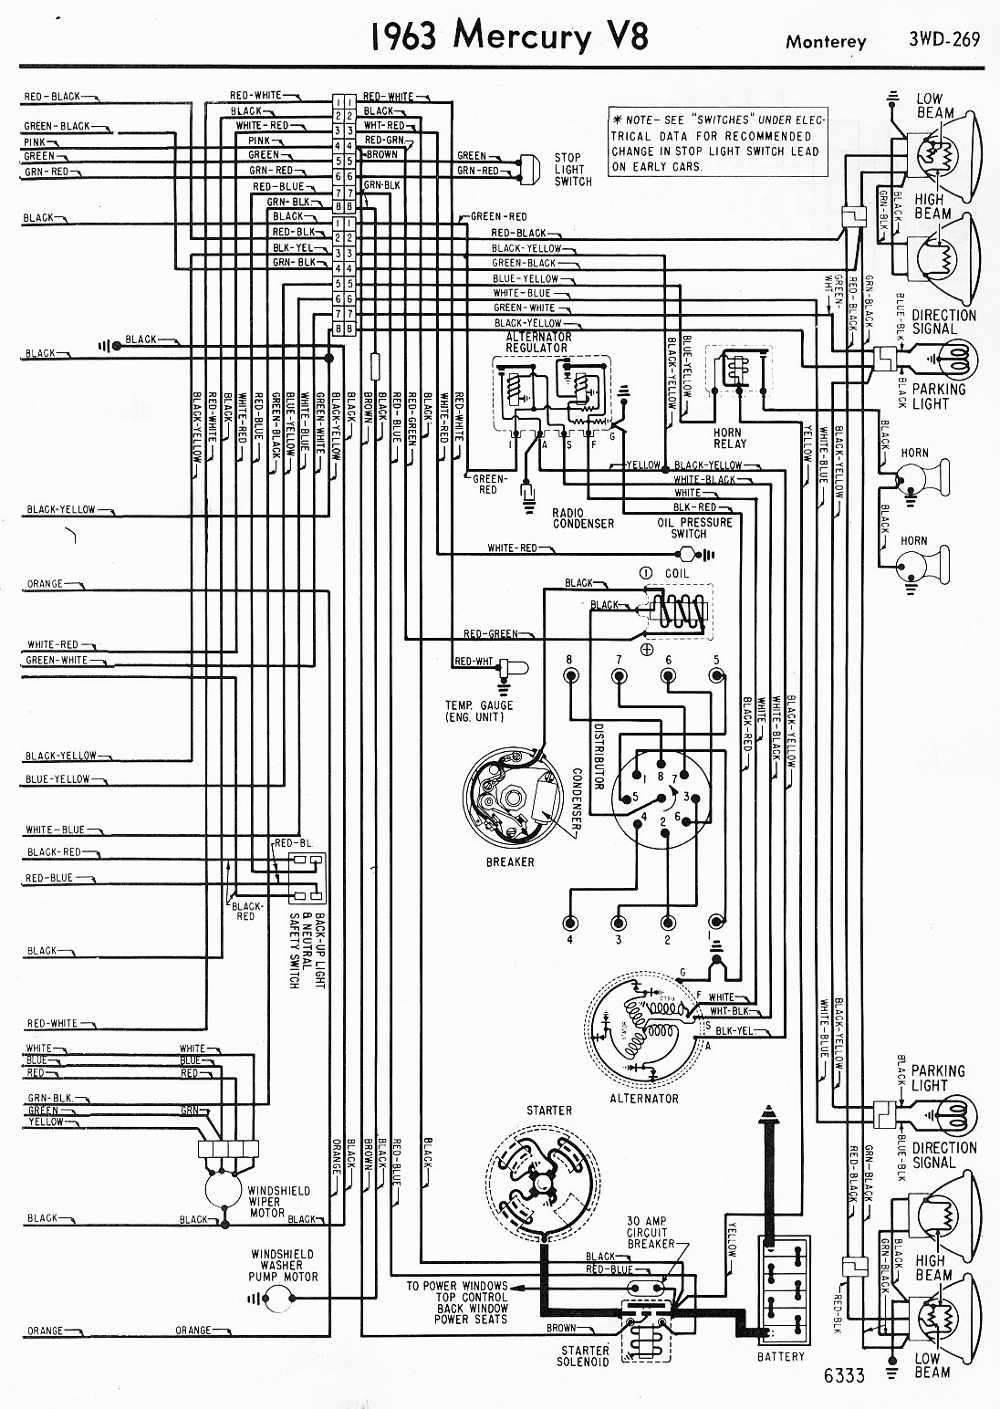 medium resolution of wiring diagram 17 95 choose options compare 1953 desoto color wiring1956 mercury wiring diagram wiring diagram